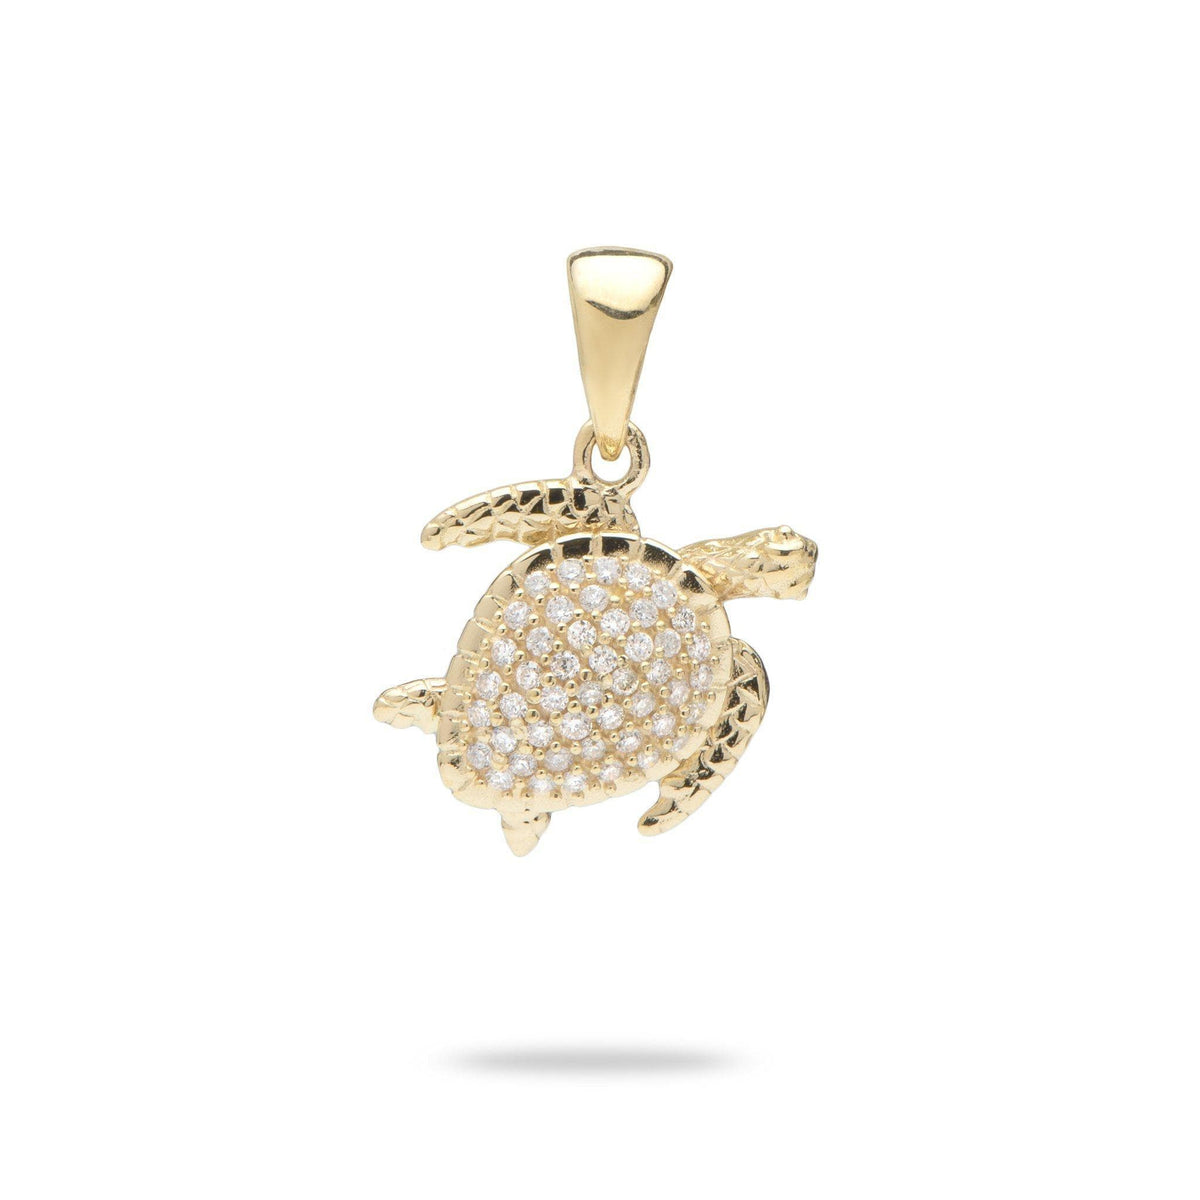 Honu (Sea Turtle) Pendant in 14K Yellow Gold with Diamonds - 13mm